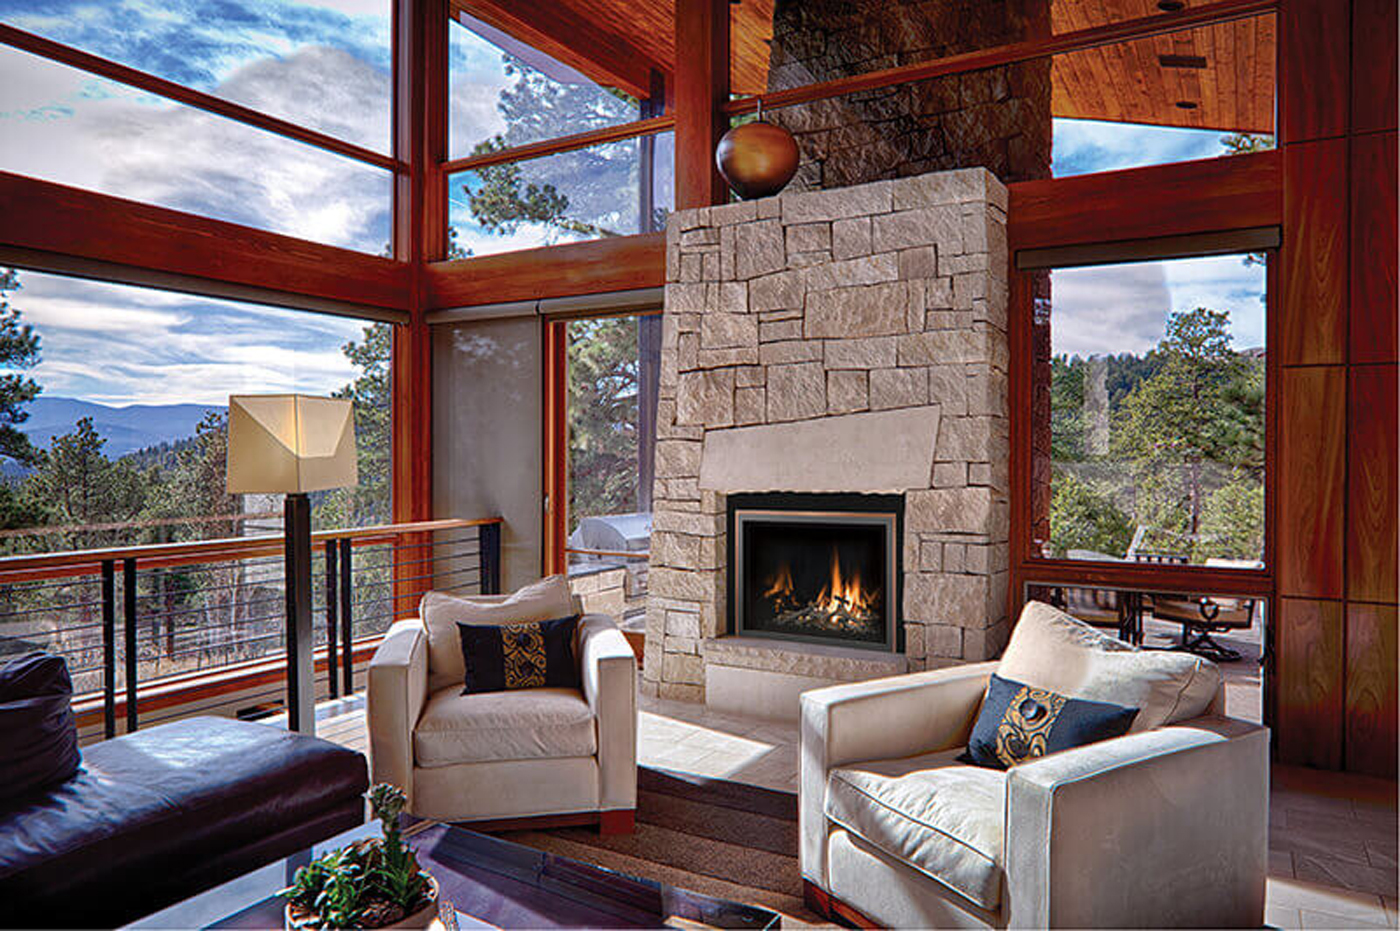 Boston Fine Home Details and Brassworks Gas Insert Fireplace